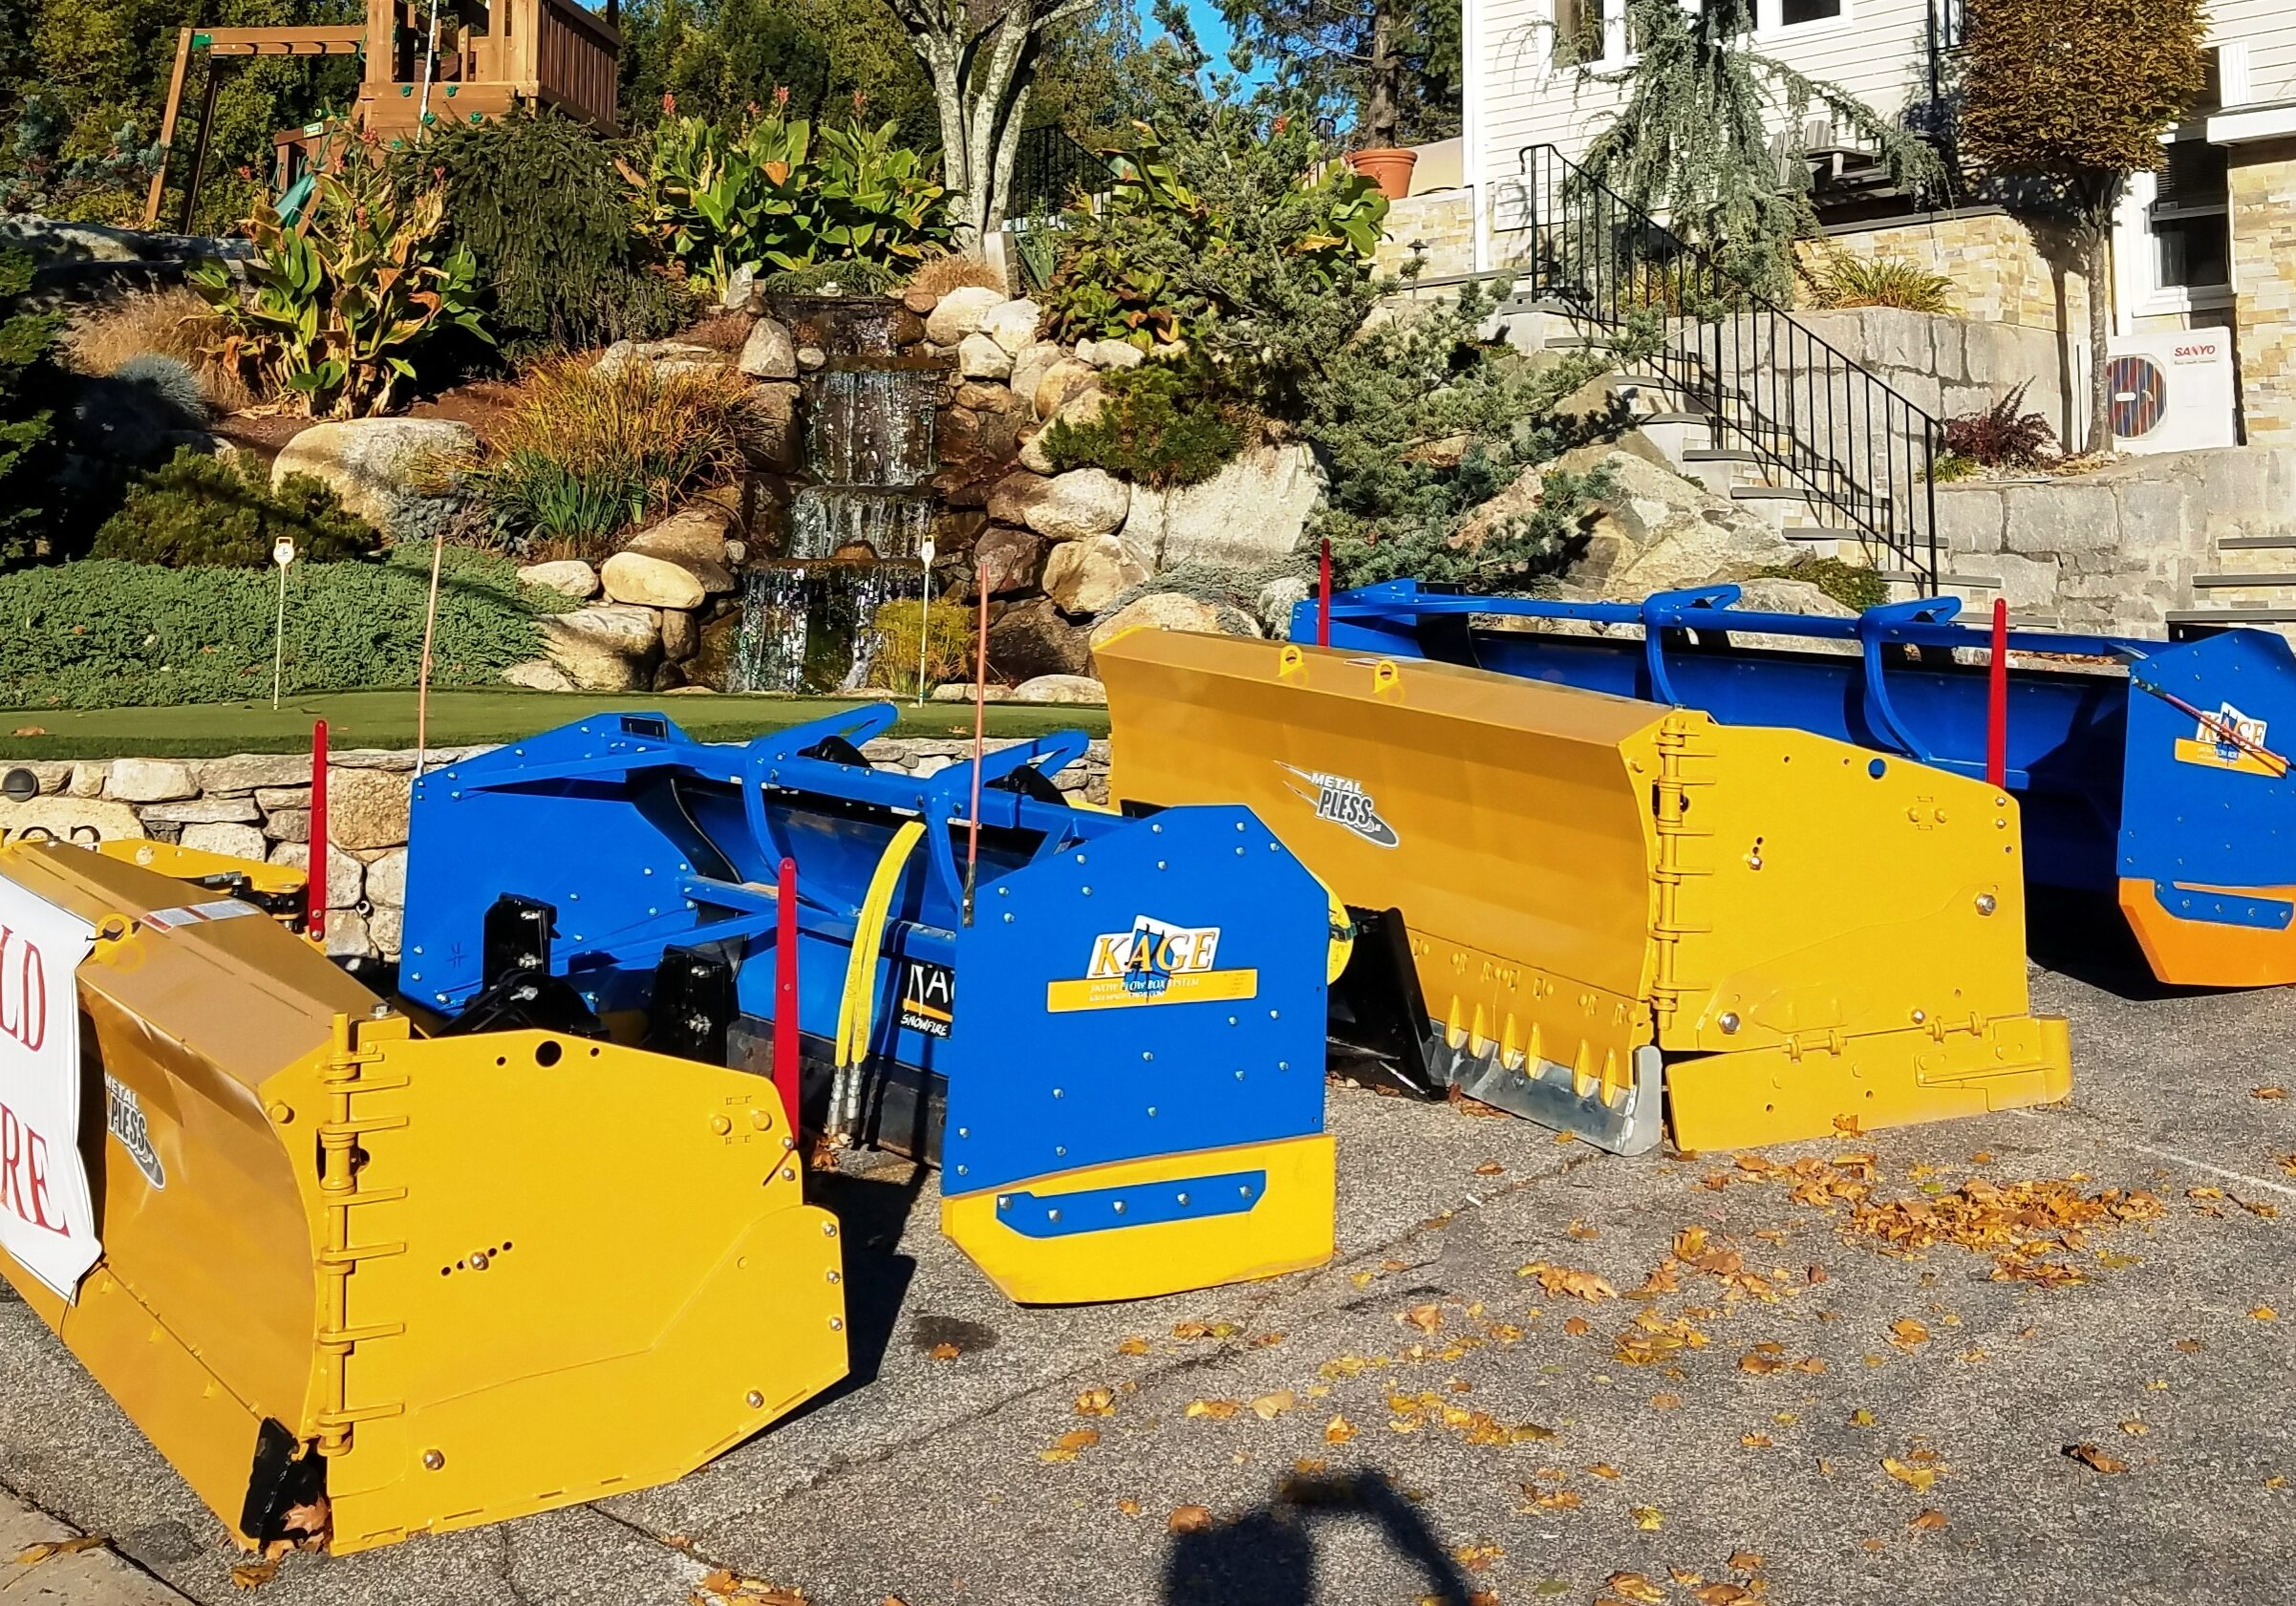 Metal Pless & Kage Plows